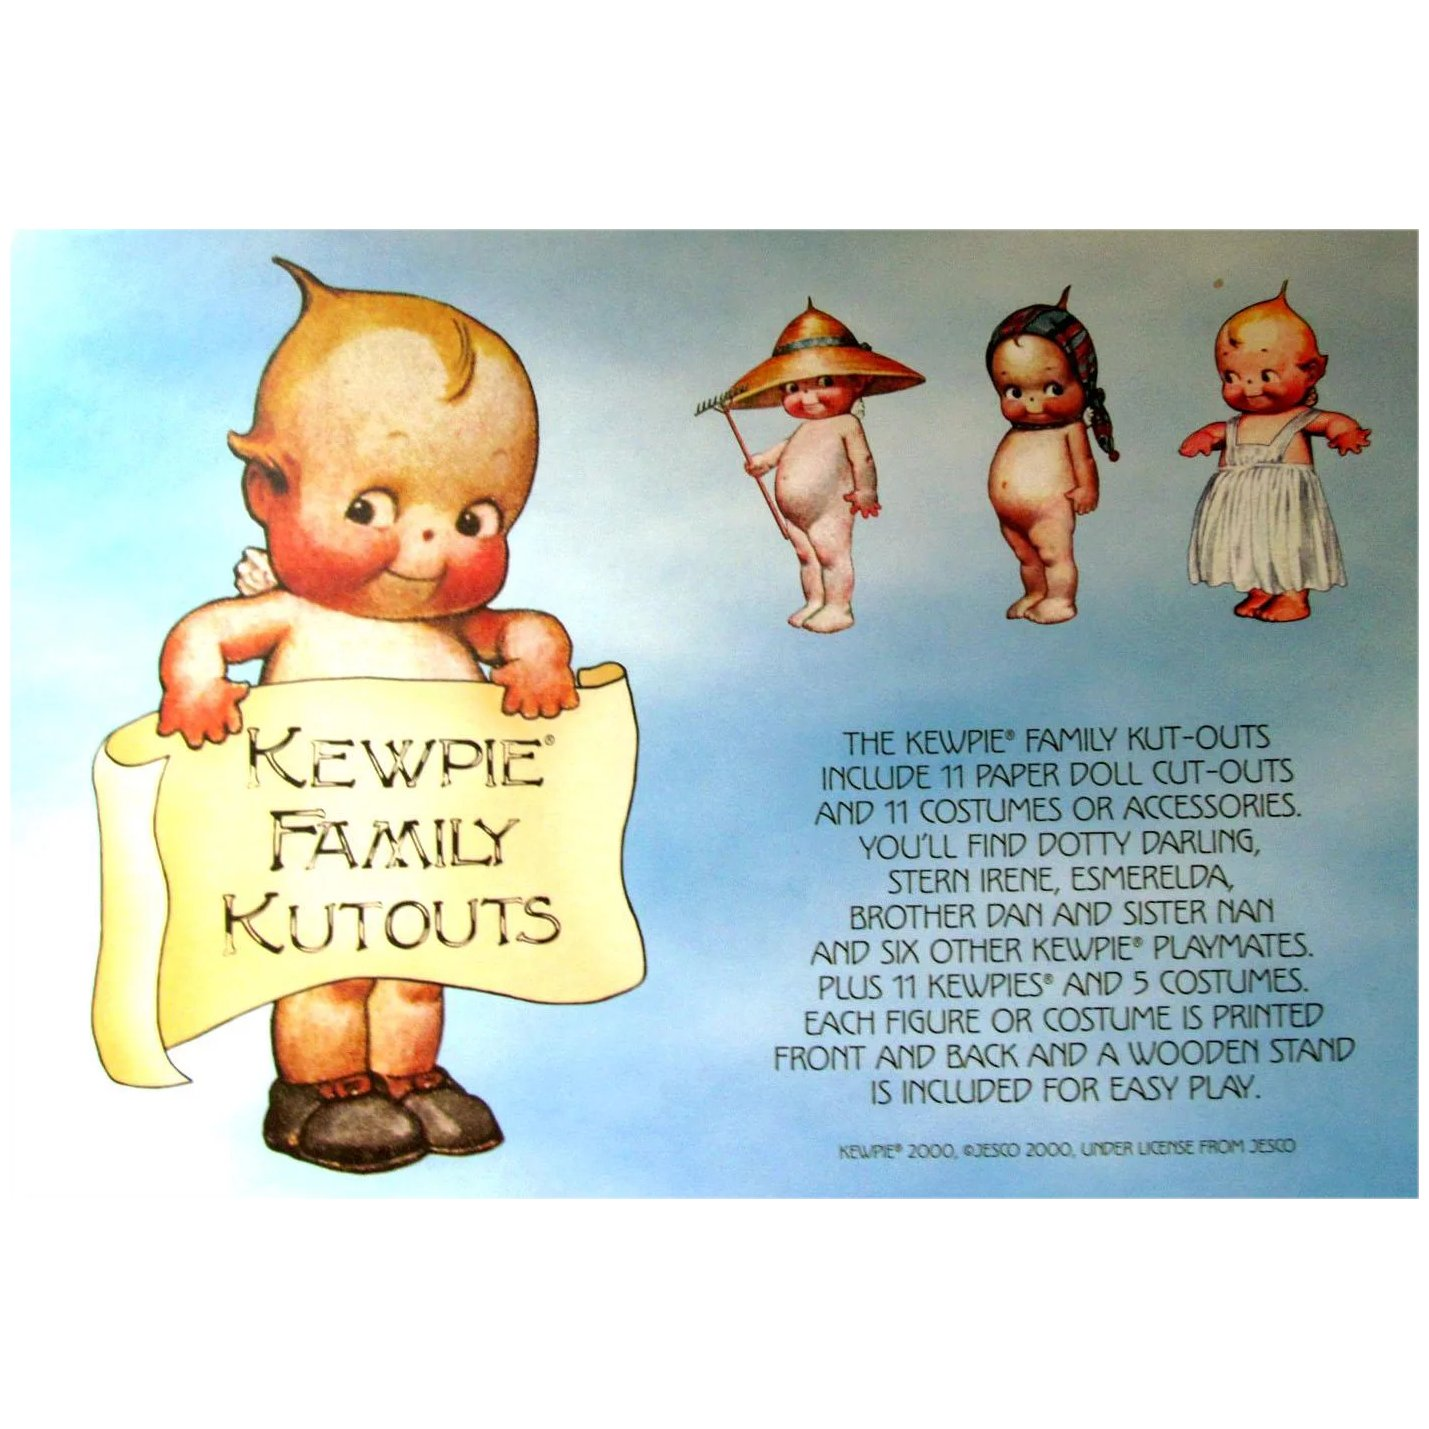 KEWPIE FAMILY CUTOUTS-11 Paper Doll and 11 Costumes or : Lulu ...